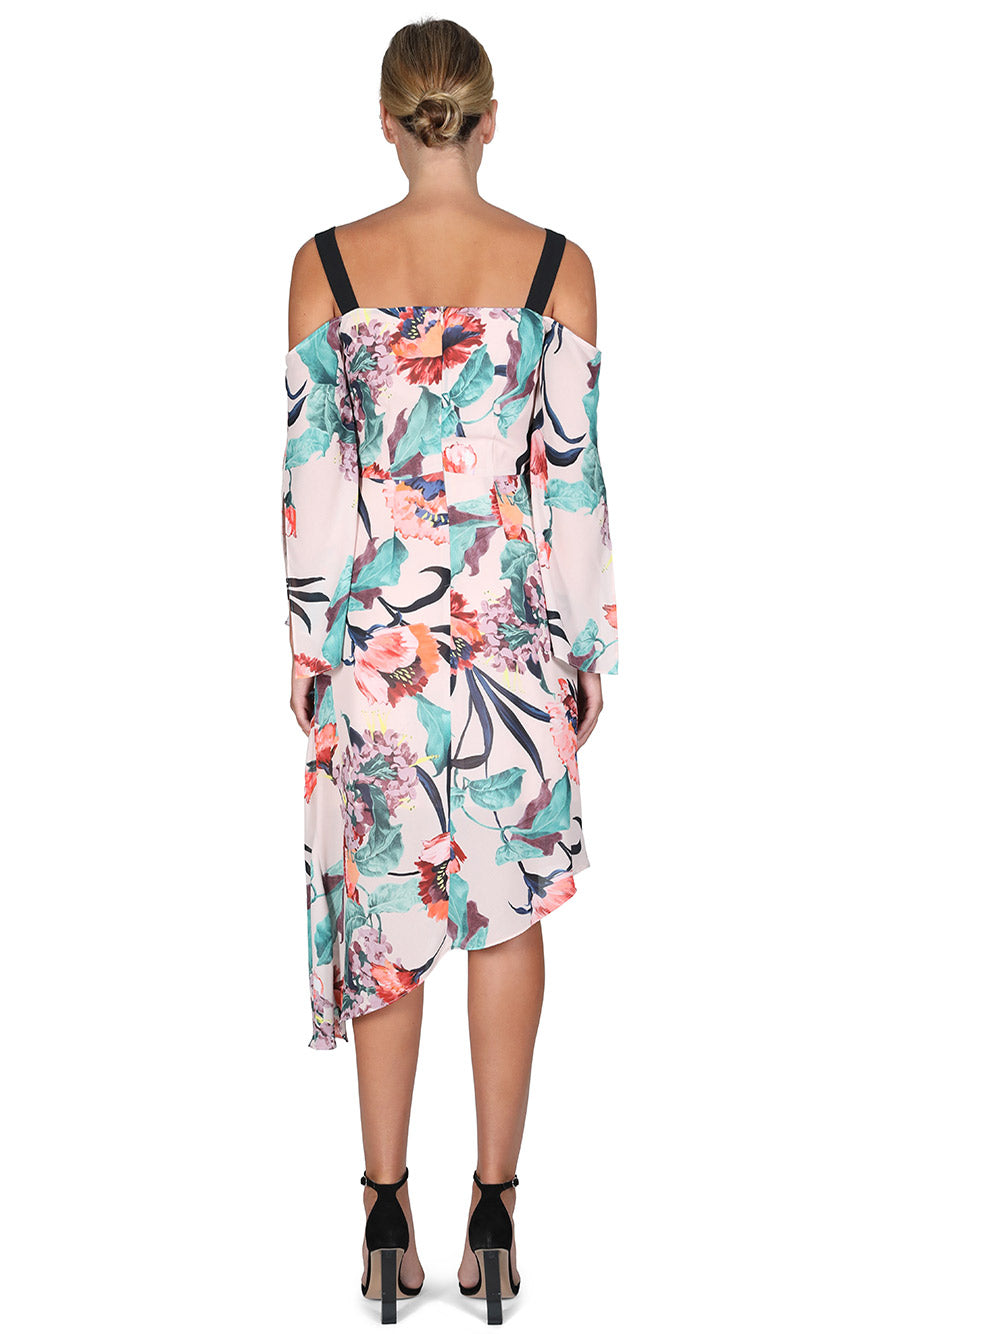 COOPER ST Posey Grove Dress